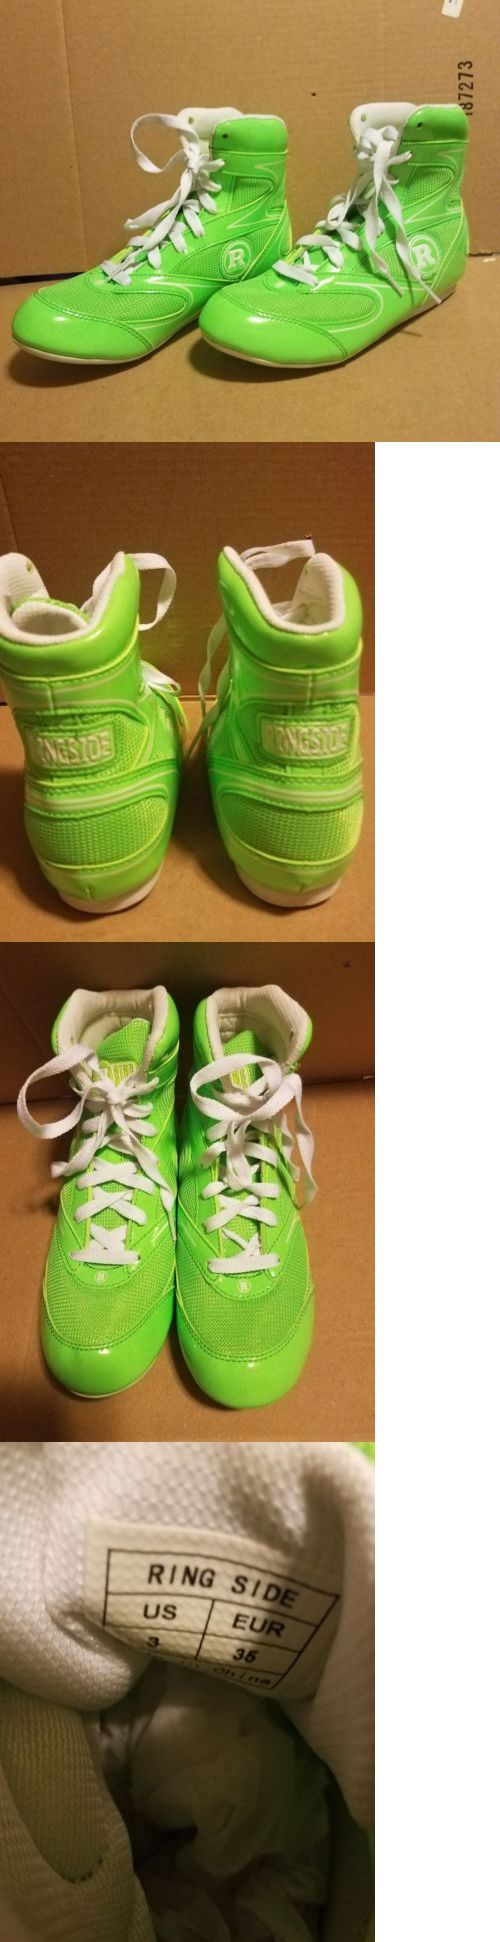 Shoes and Footwear 73989: Ringside Lo-Top Diablo Boxing Shoes - Neon Green Youth Size 3 -> BUY IT NOW ONLY: $30 on eBay!